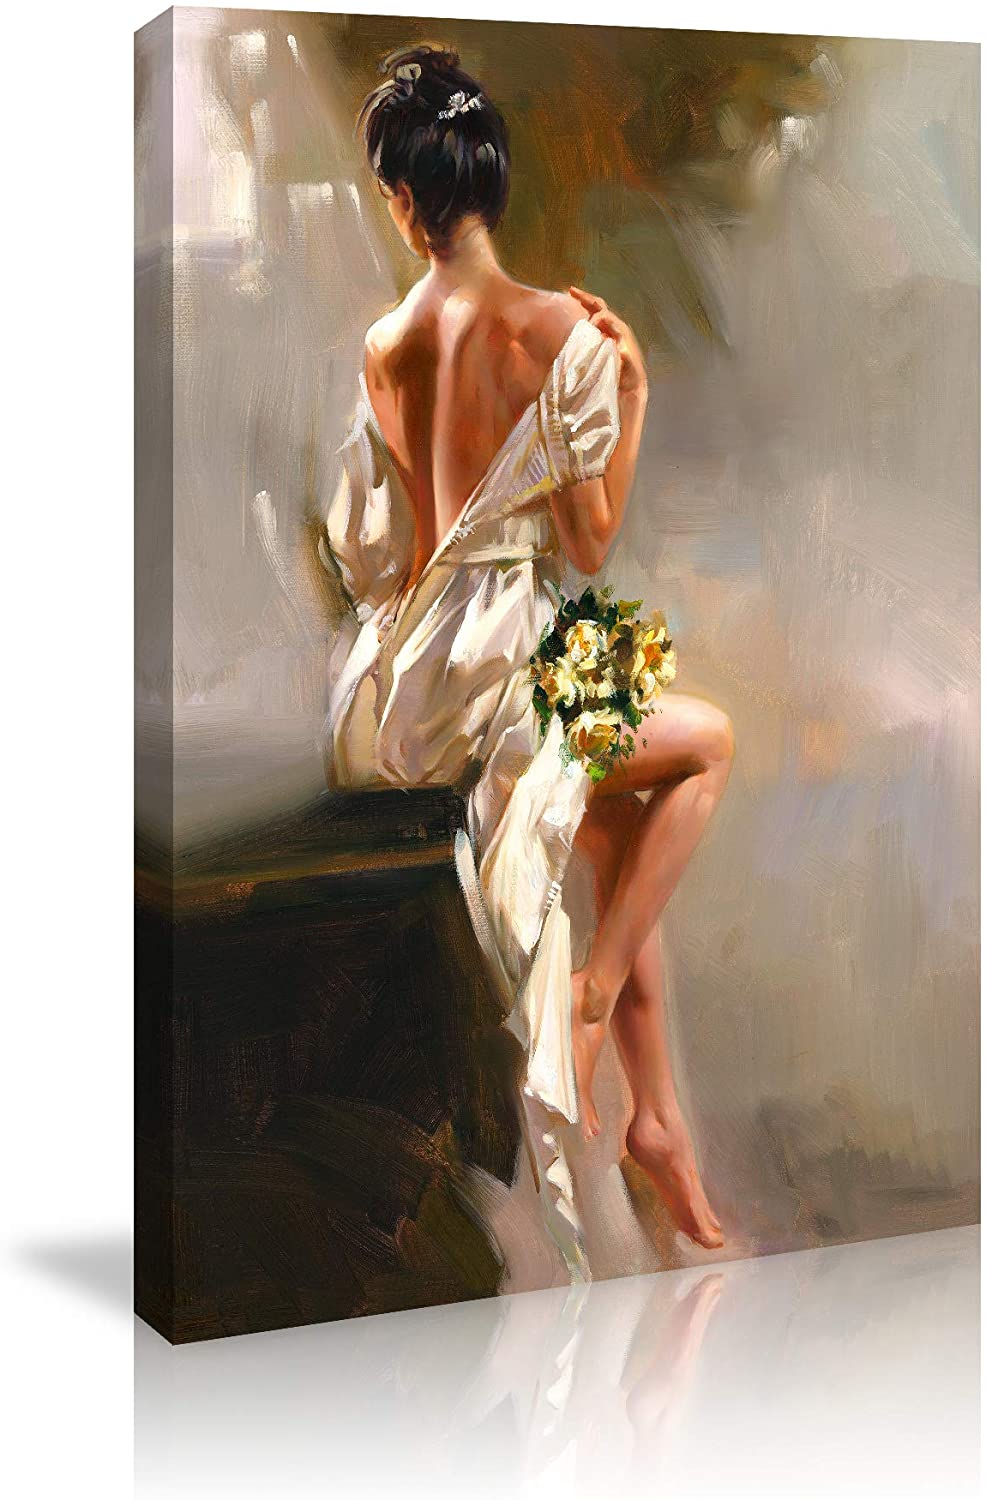 chengjing Home Decor Wall Art Painting Canvas Prints Bathroom Bedroom Living Room Wall Decoration Nude Woman Art Stretched and Framed Painting on Canvas